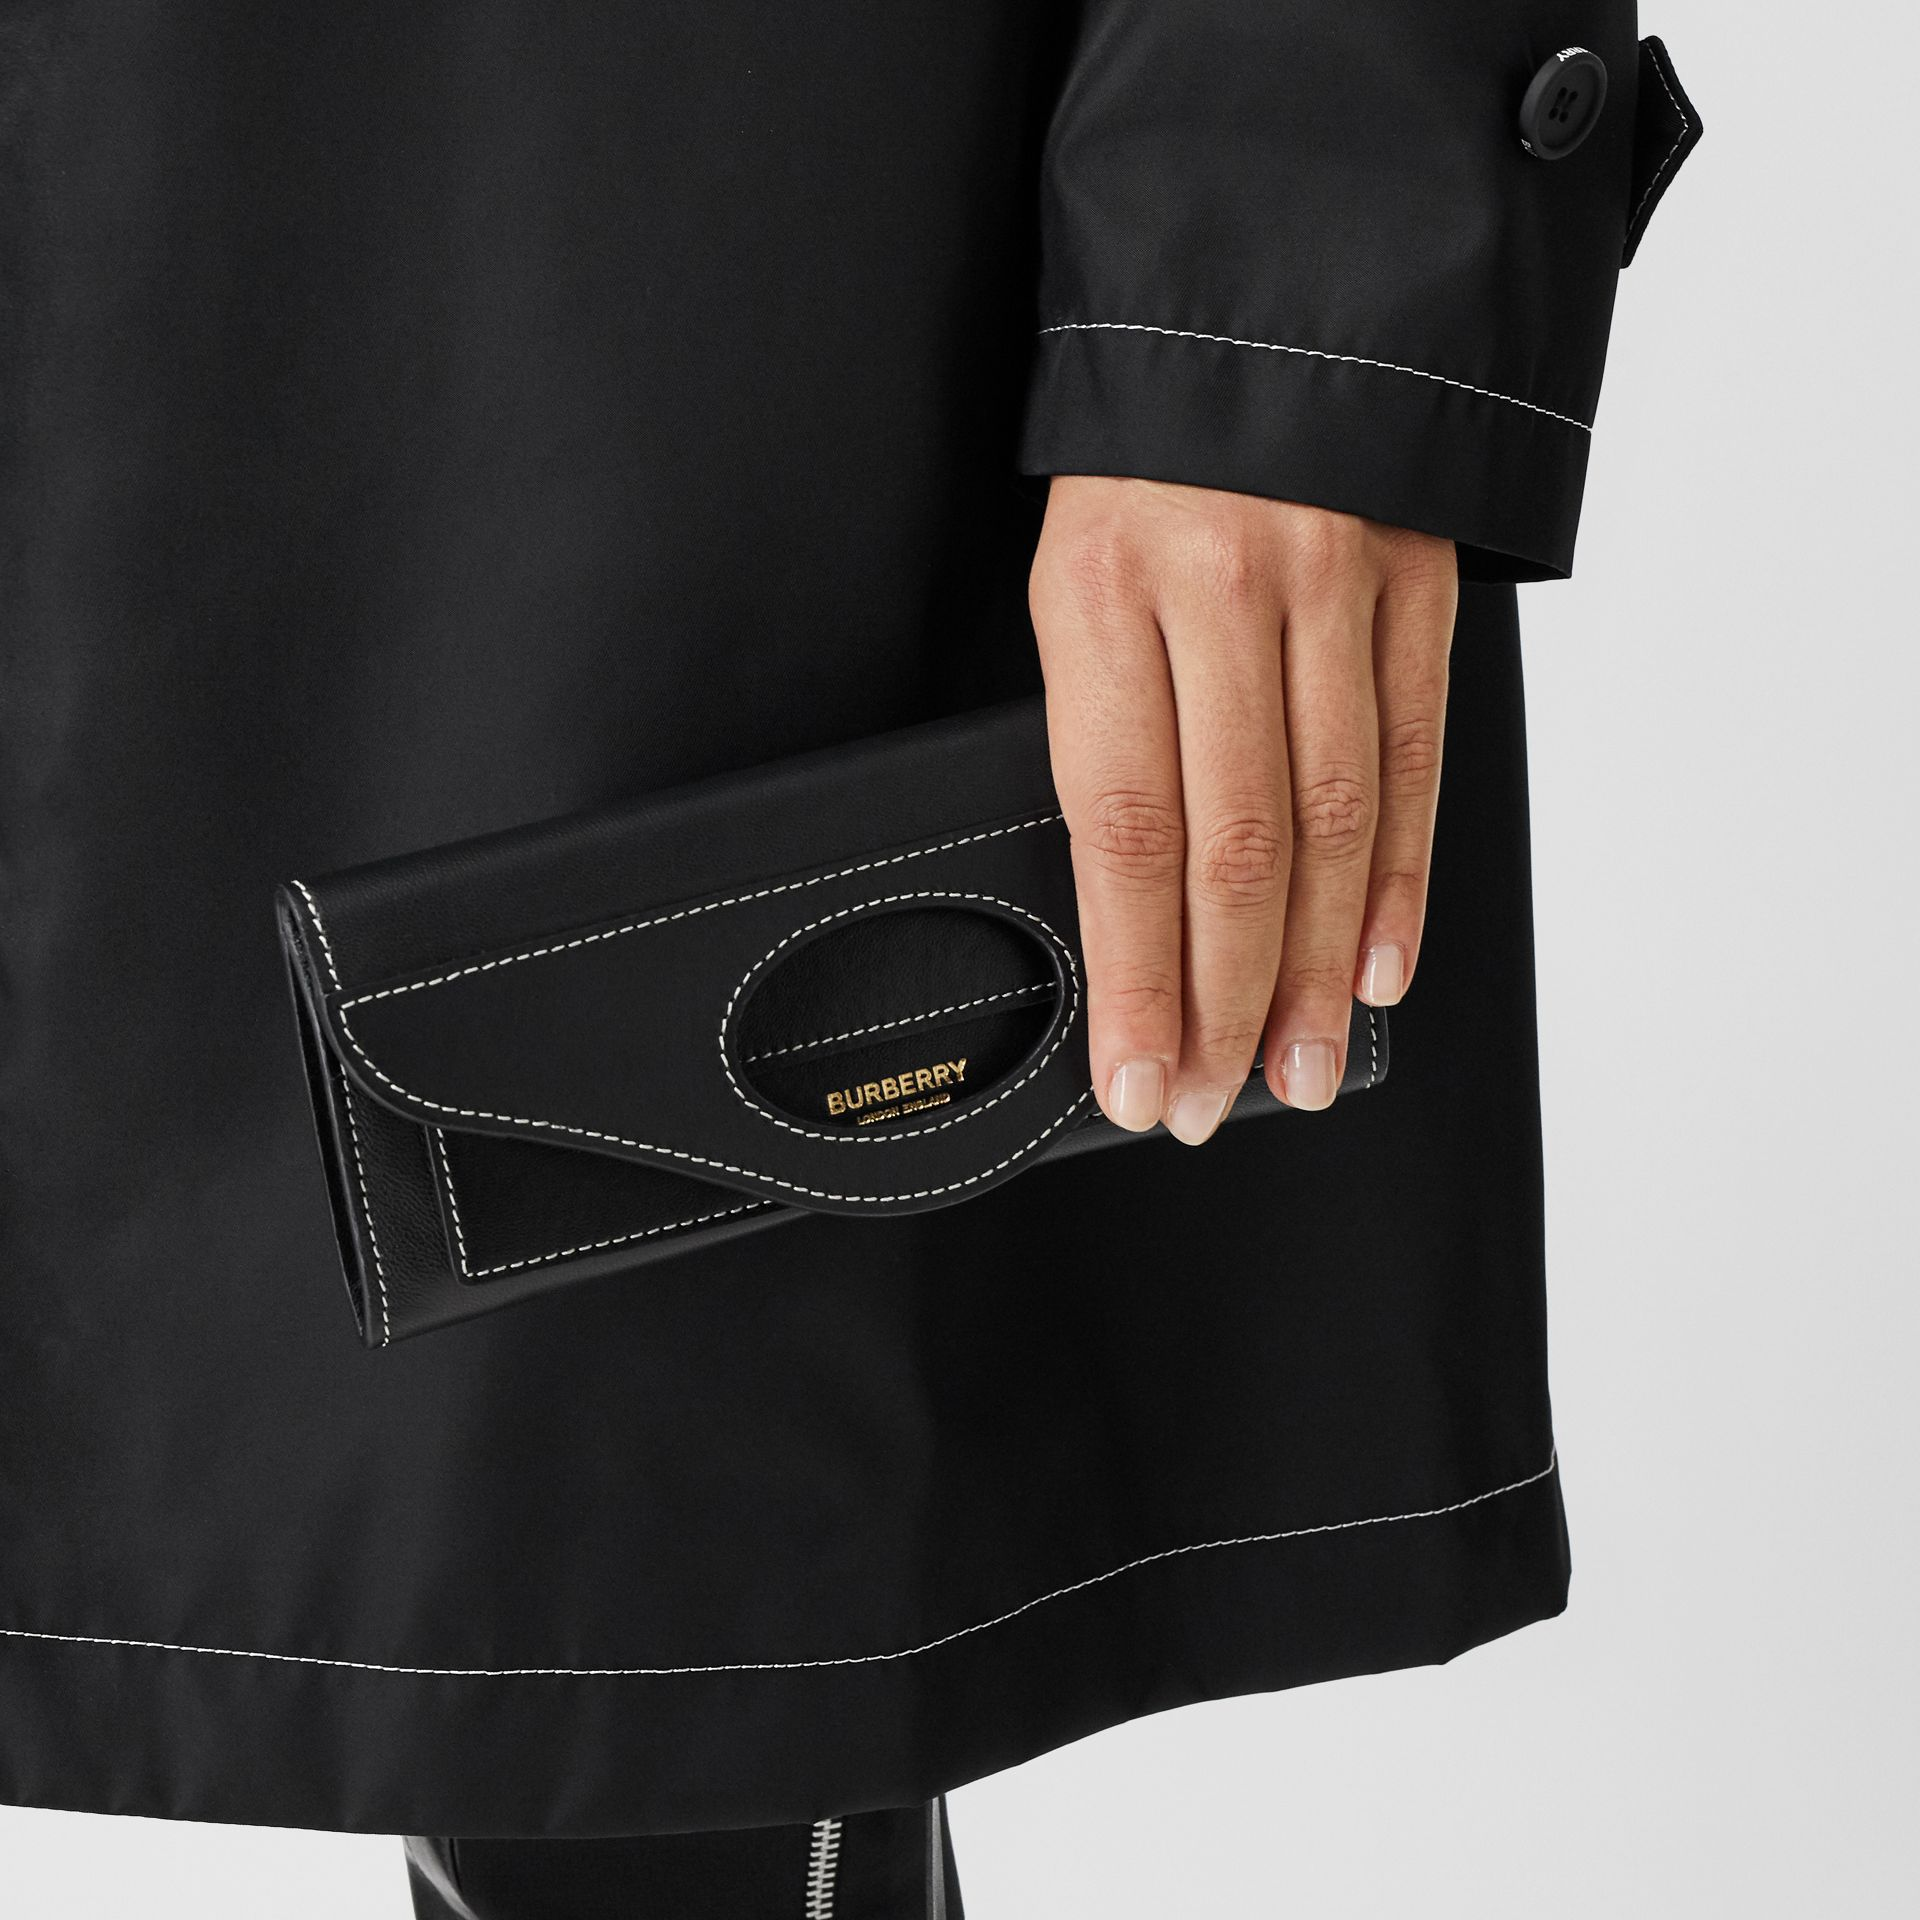 Mini Topstitched Lambskin Pocket Clutch in Black | Burberry - gallery image 11